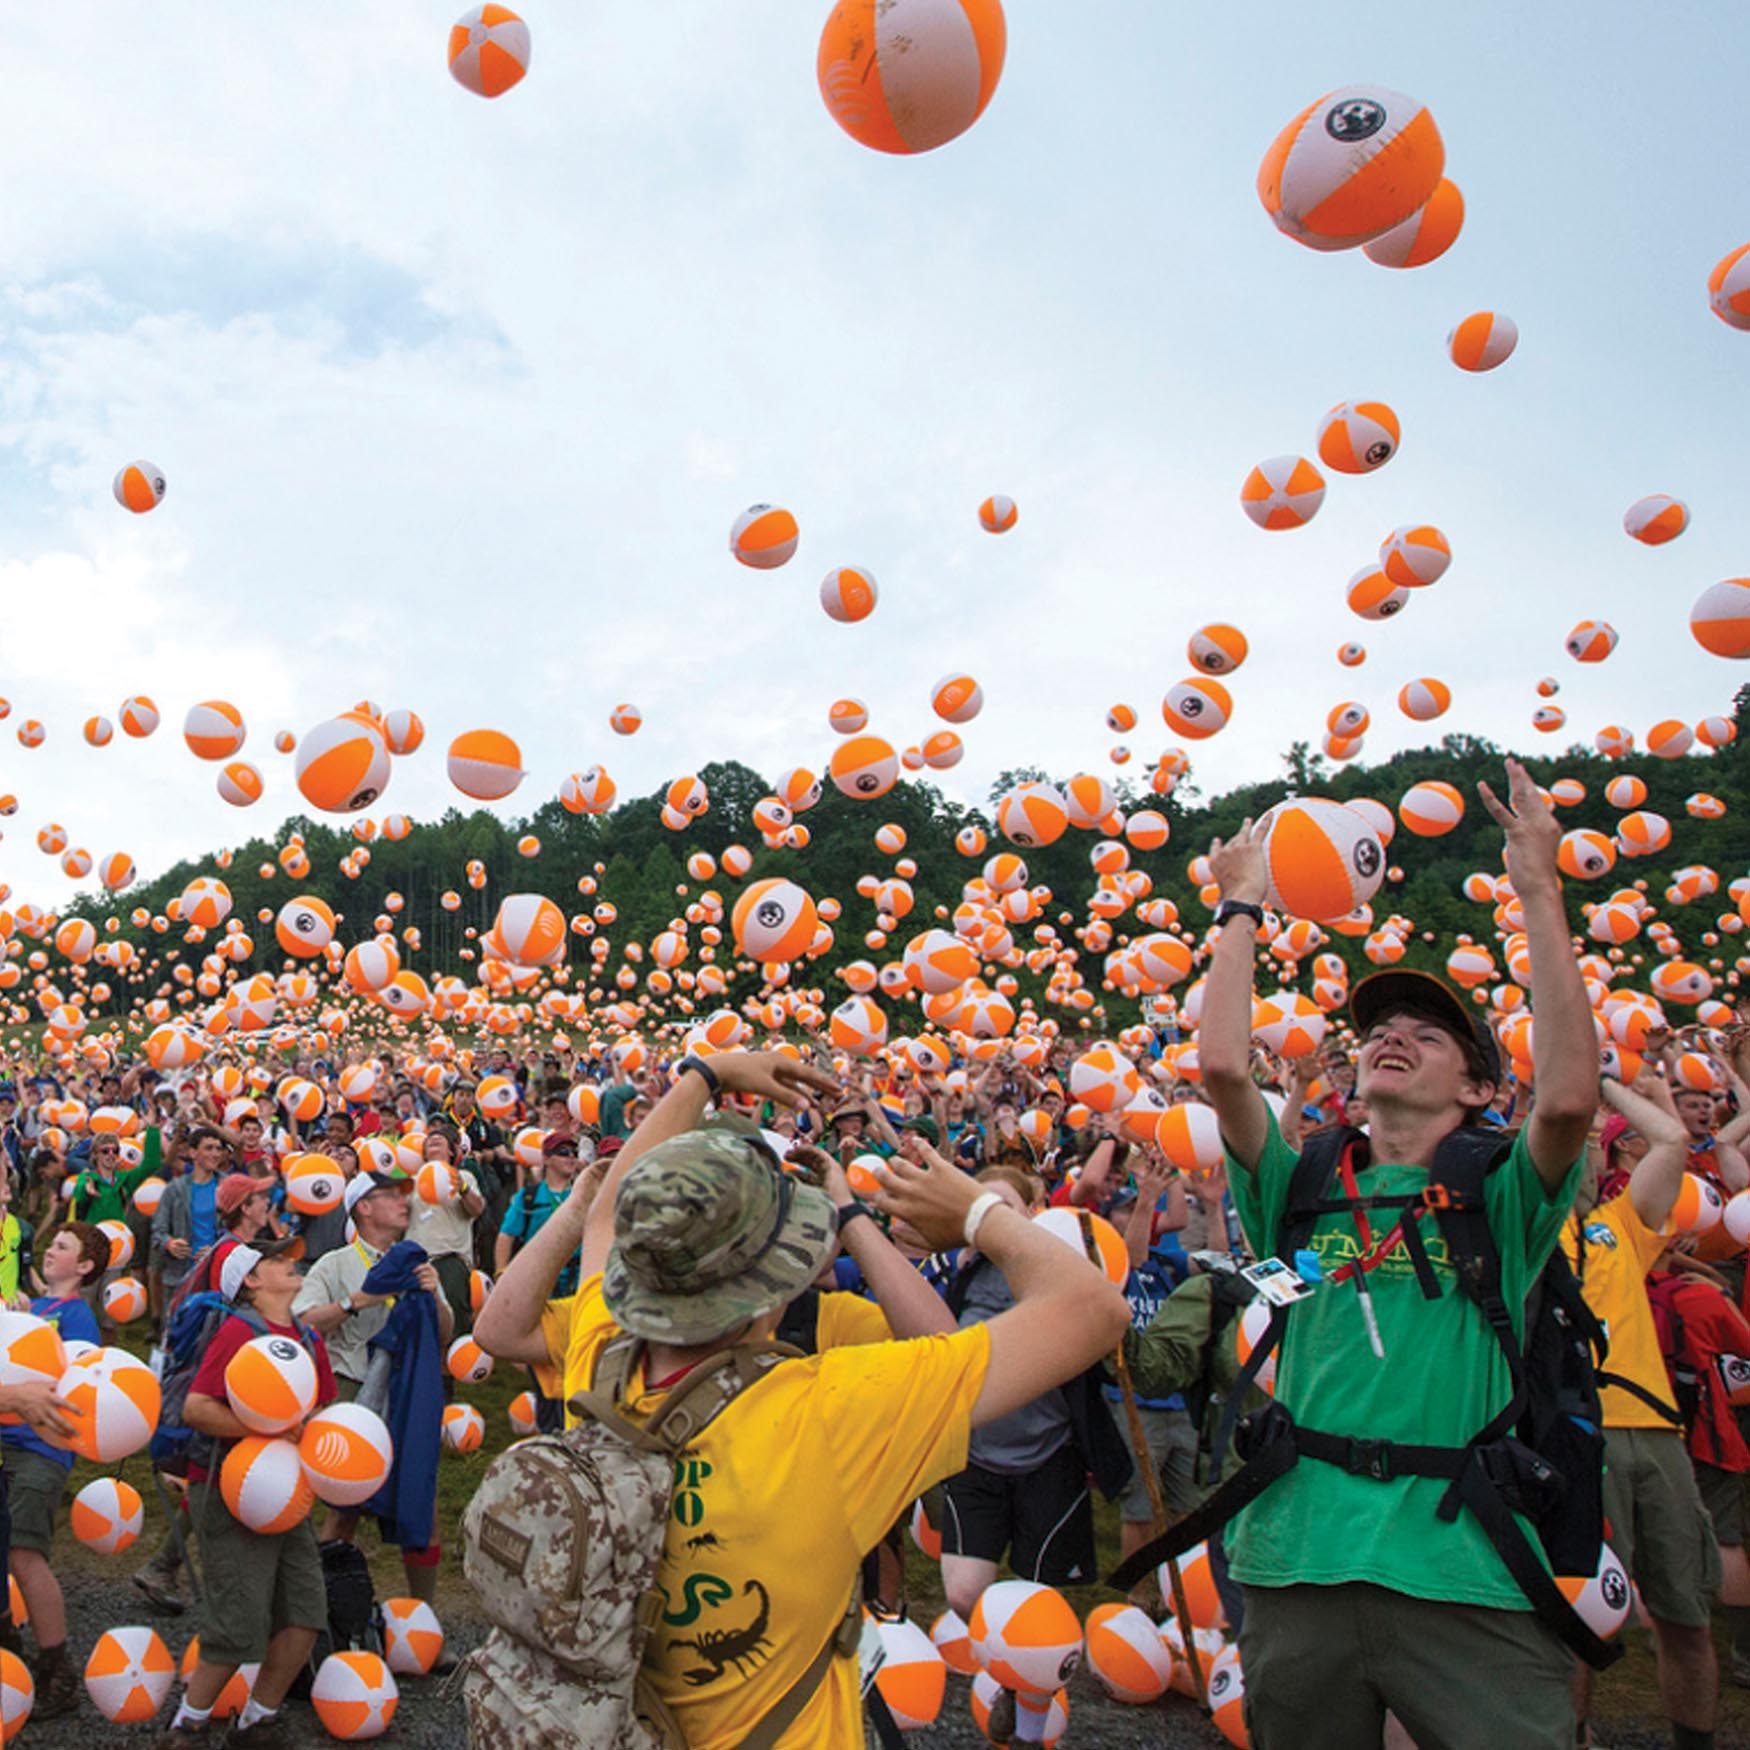 Boy Scouts at an outdoor camp throwing beach balls into the sky.